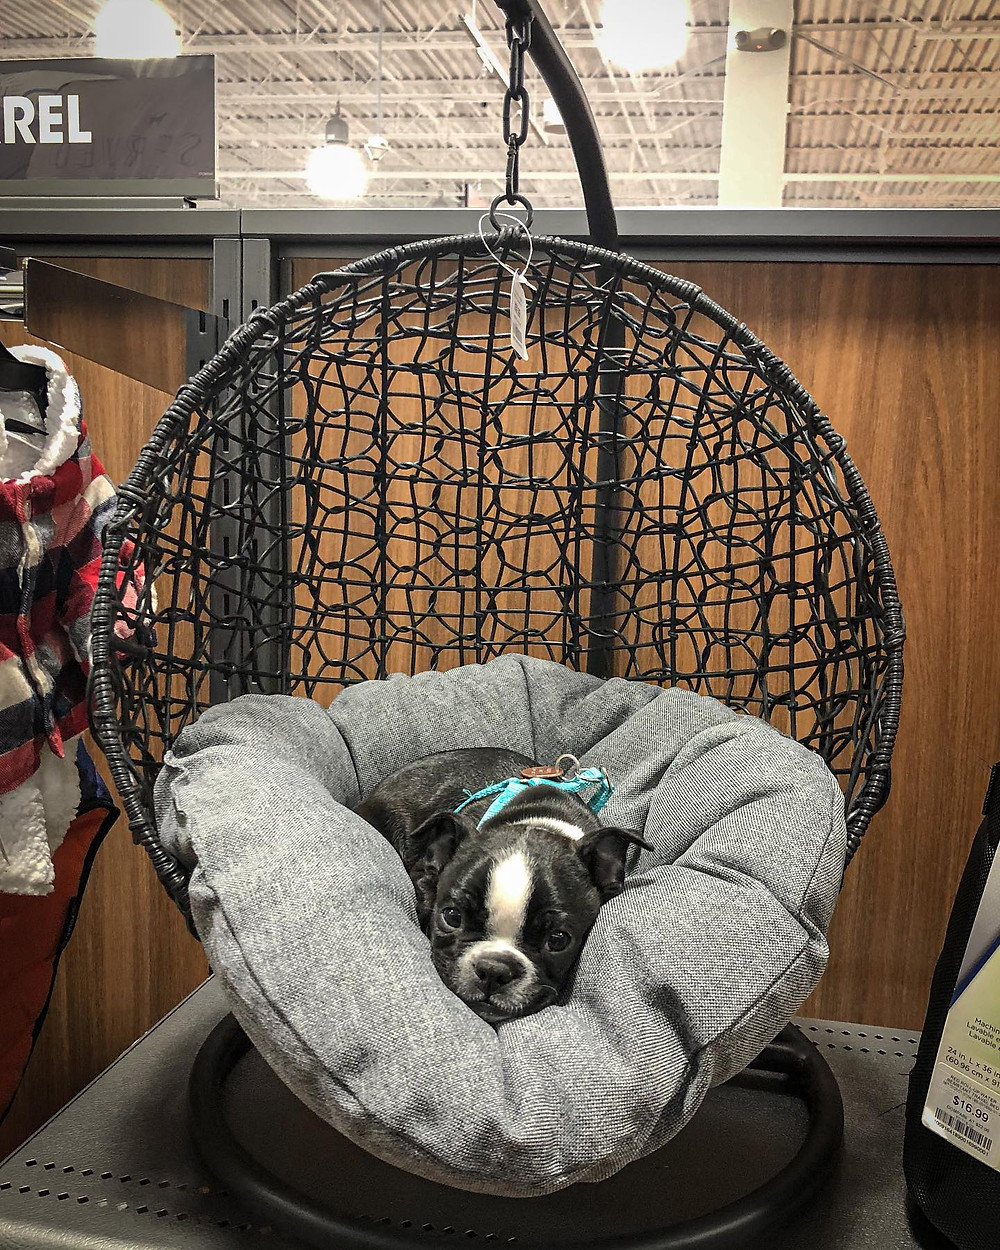 Kiki rests on a store display. It is a swinging egg shaped dog bed.